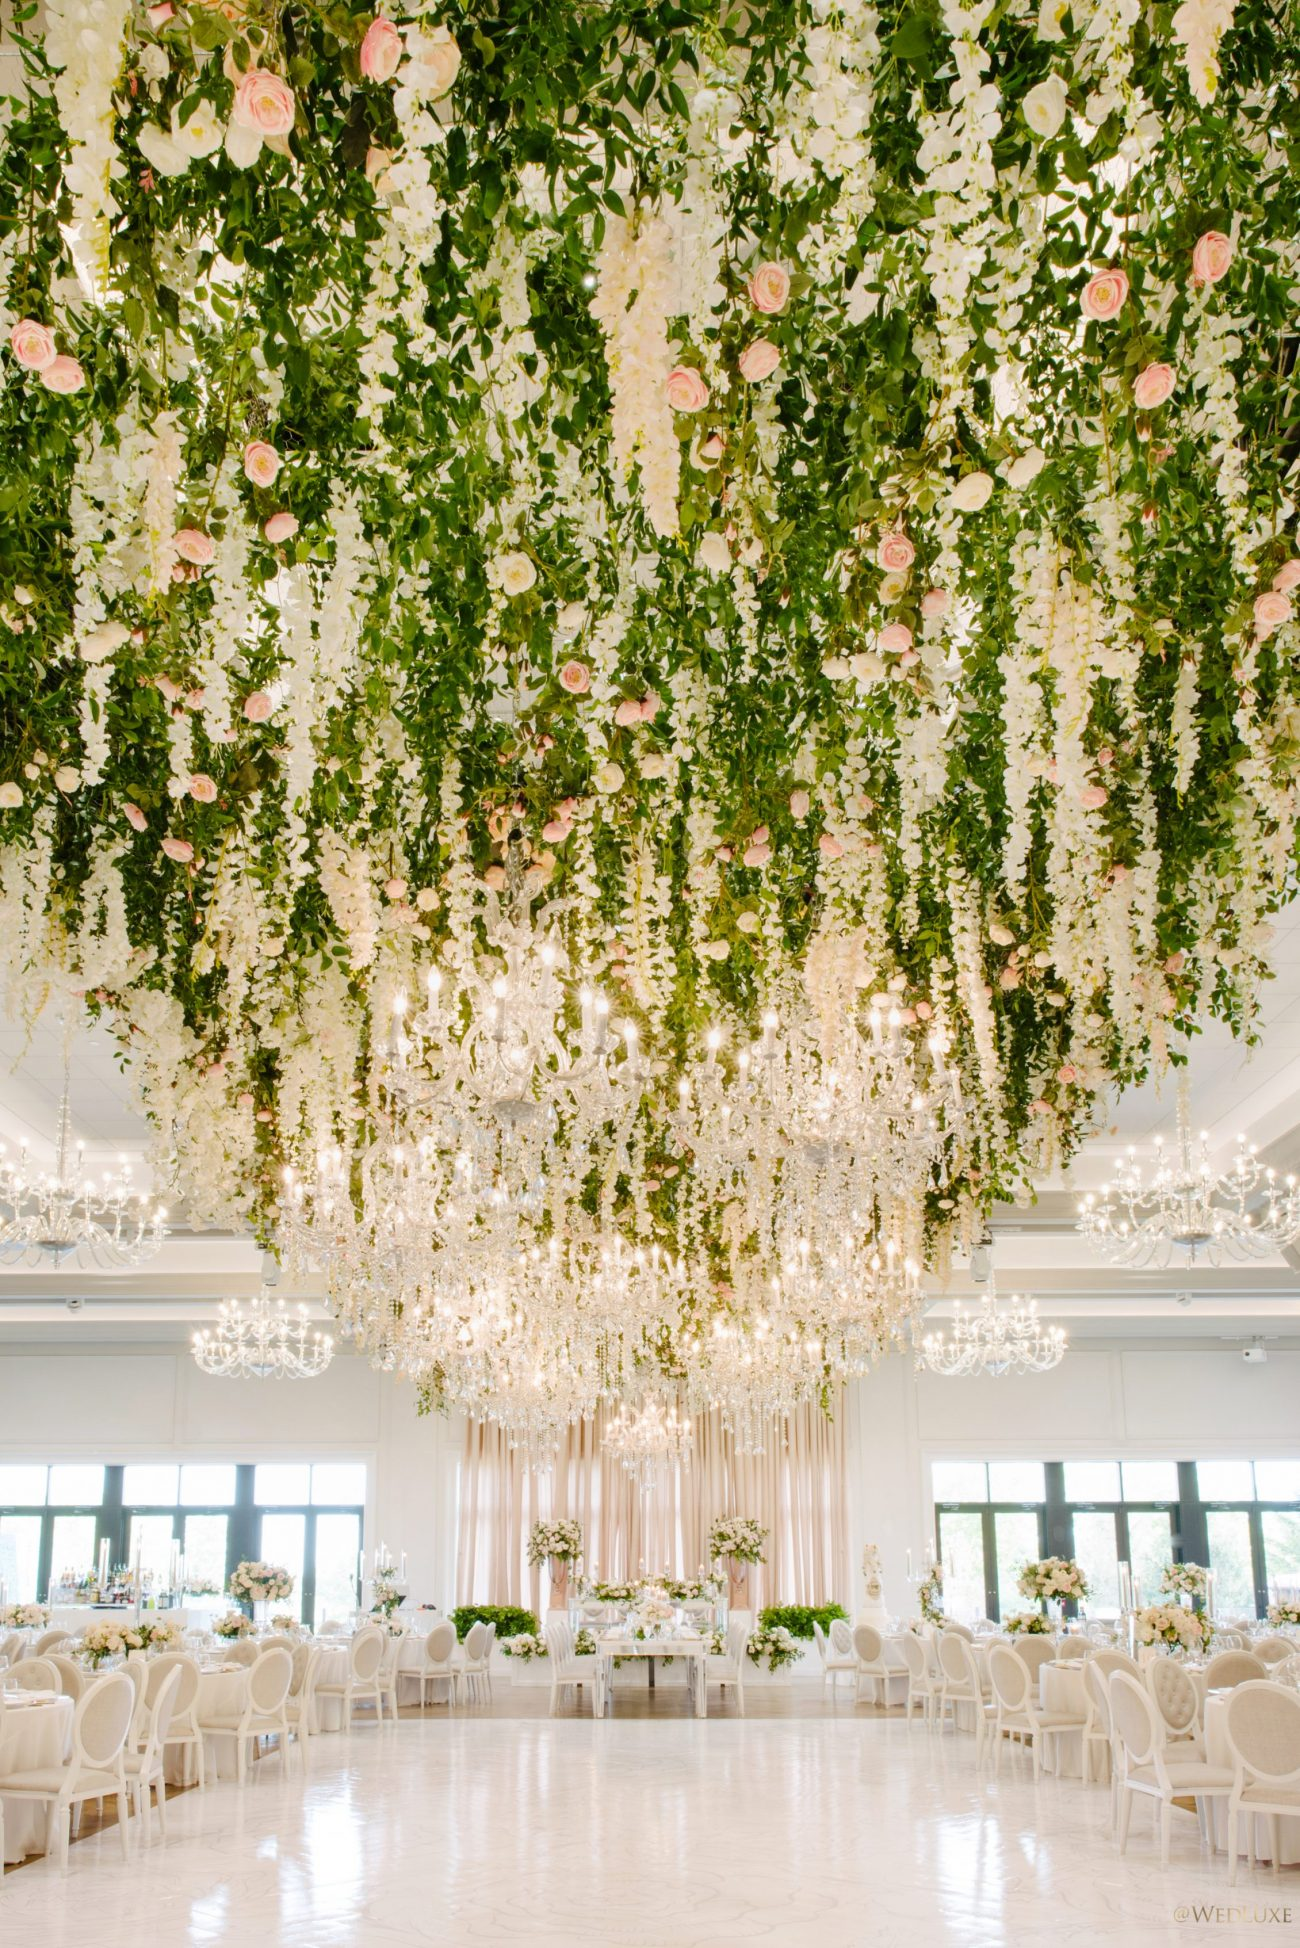 Pink roses, wisteria and vines hanging from the ceiling